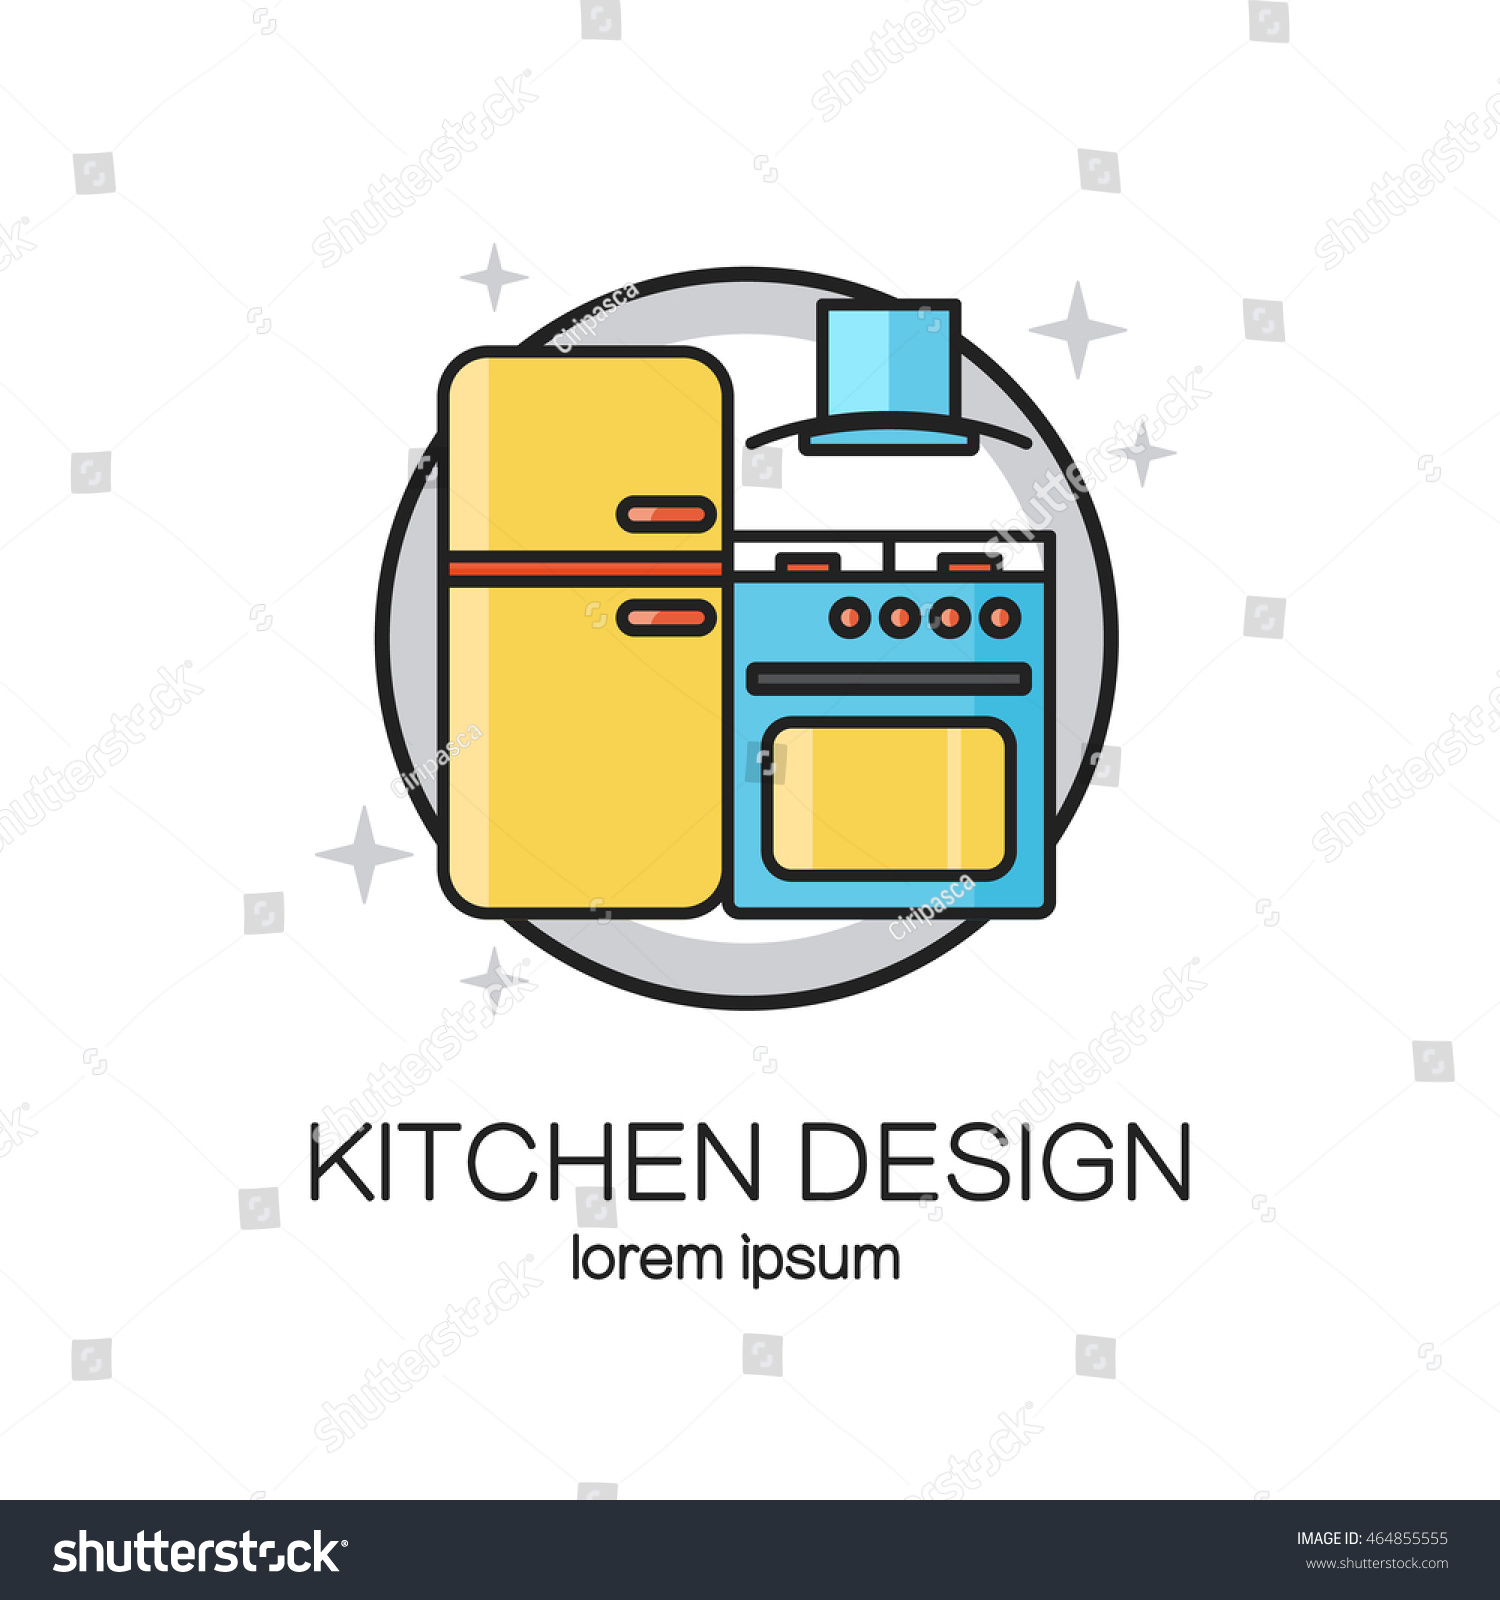 Kitchen Design Line Icon Web Logo Stock Vector HD (Royalty Free ...